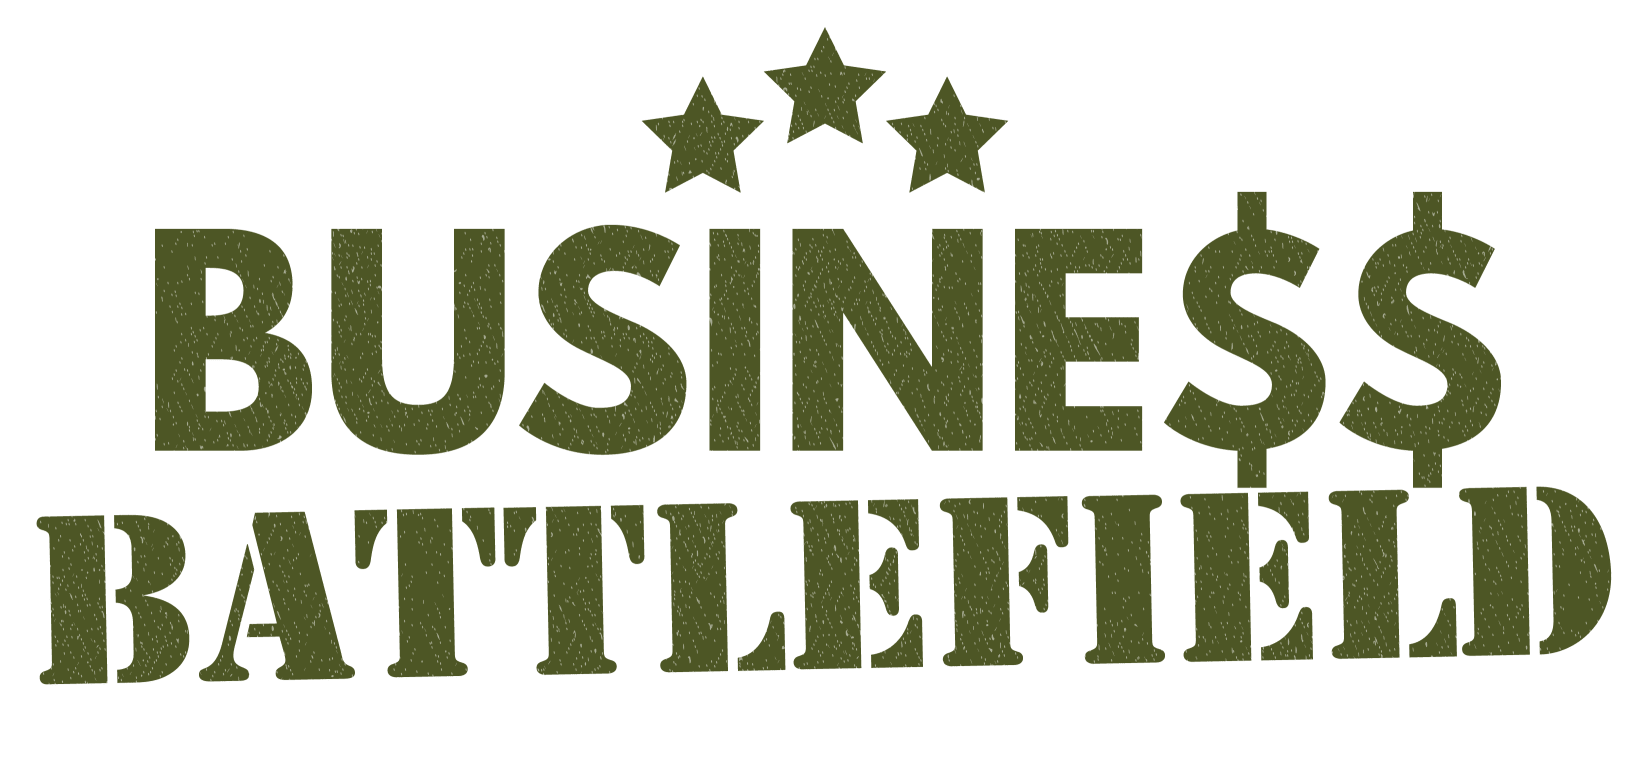 Business-Battlefield-Logo.jpg